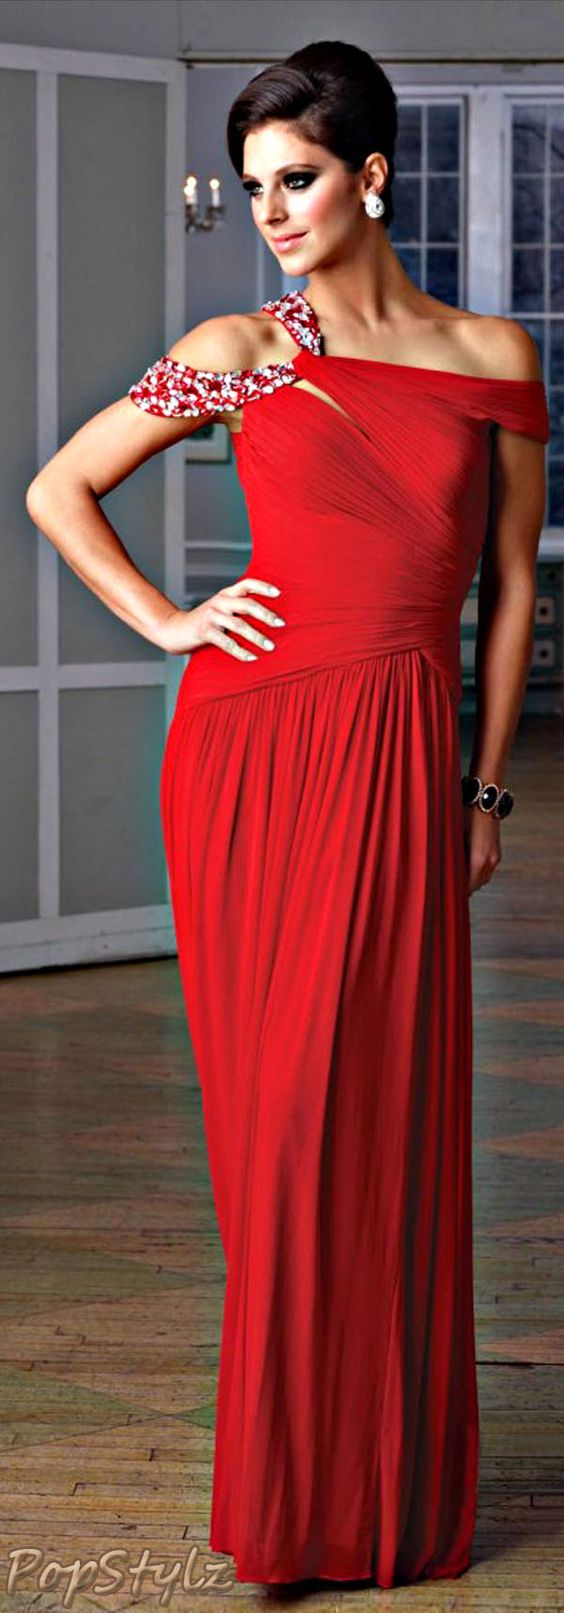 Terani Couture Bright Red Gown